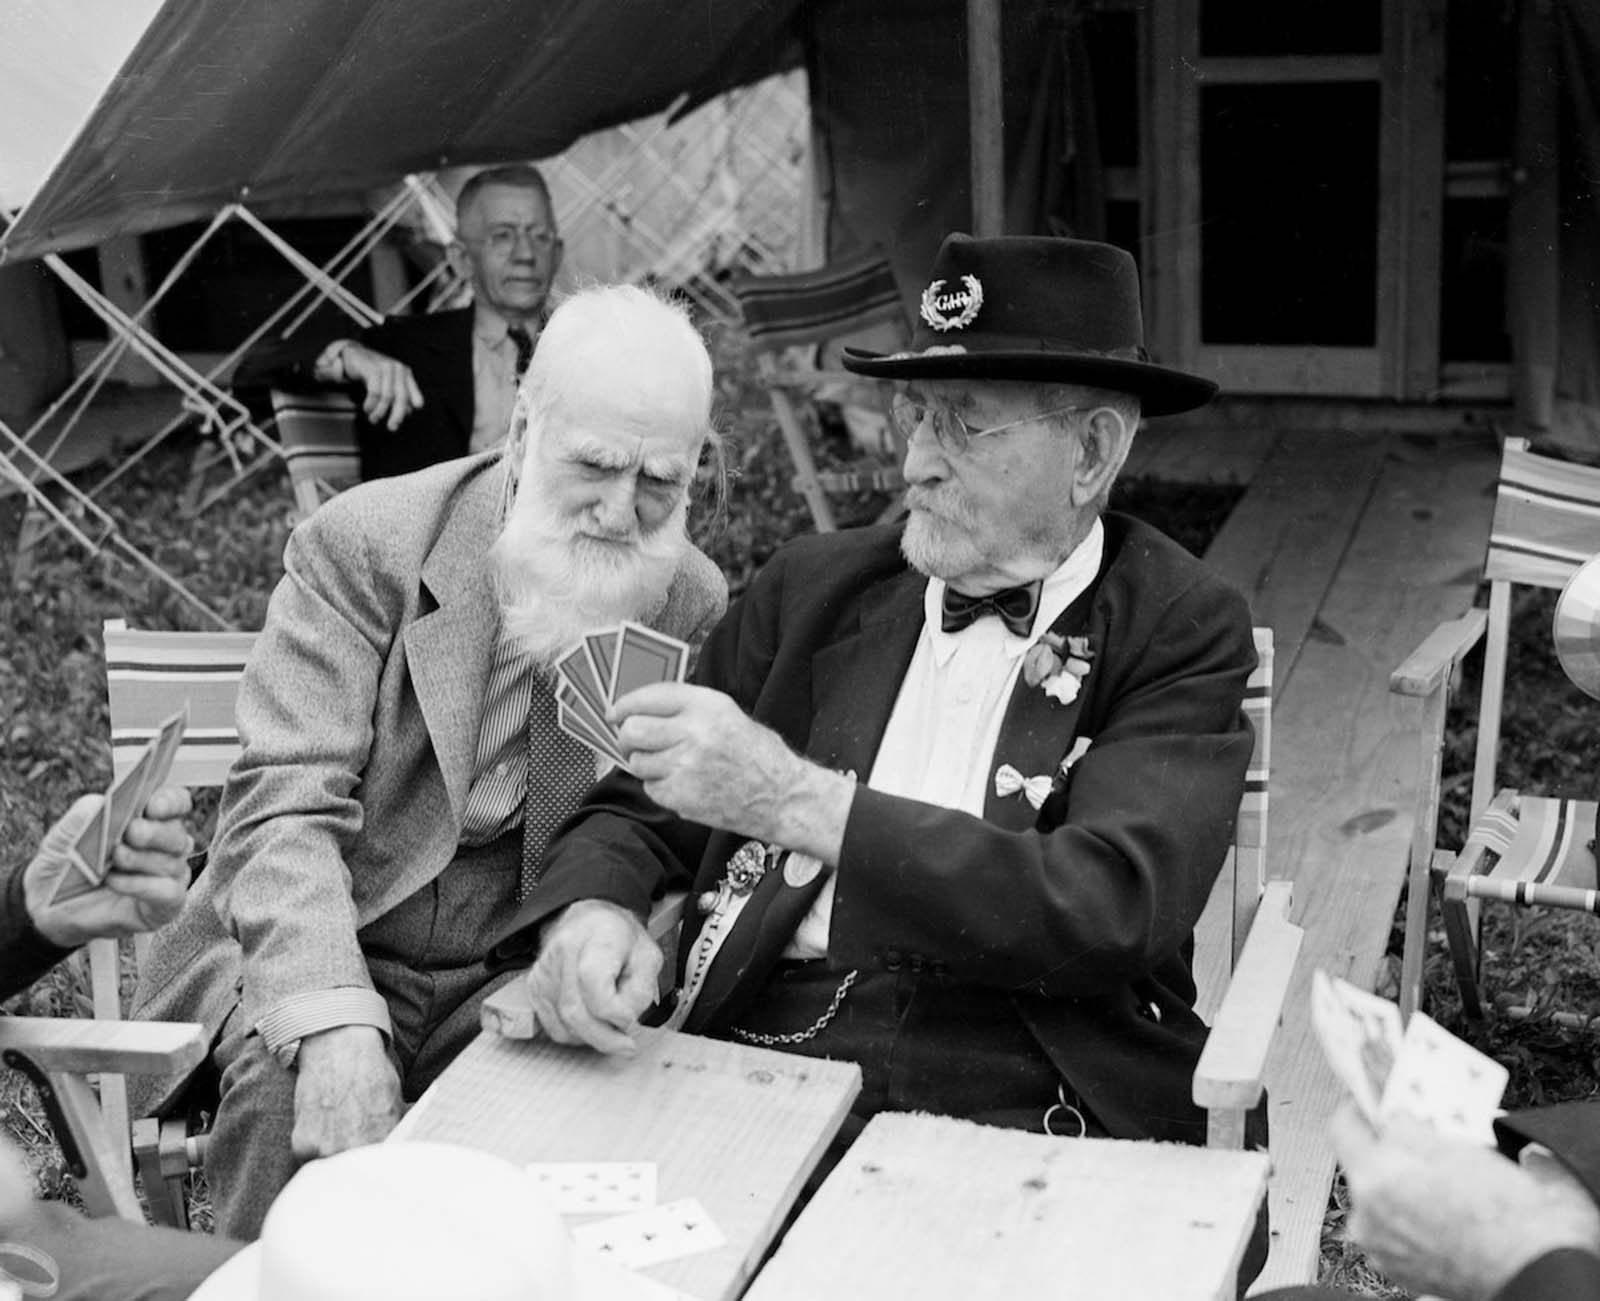 Elderly Civil War veterans playing cards together. 1930.